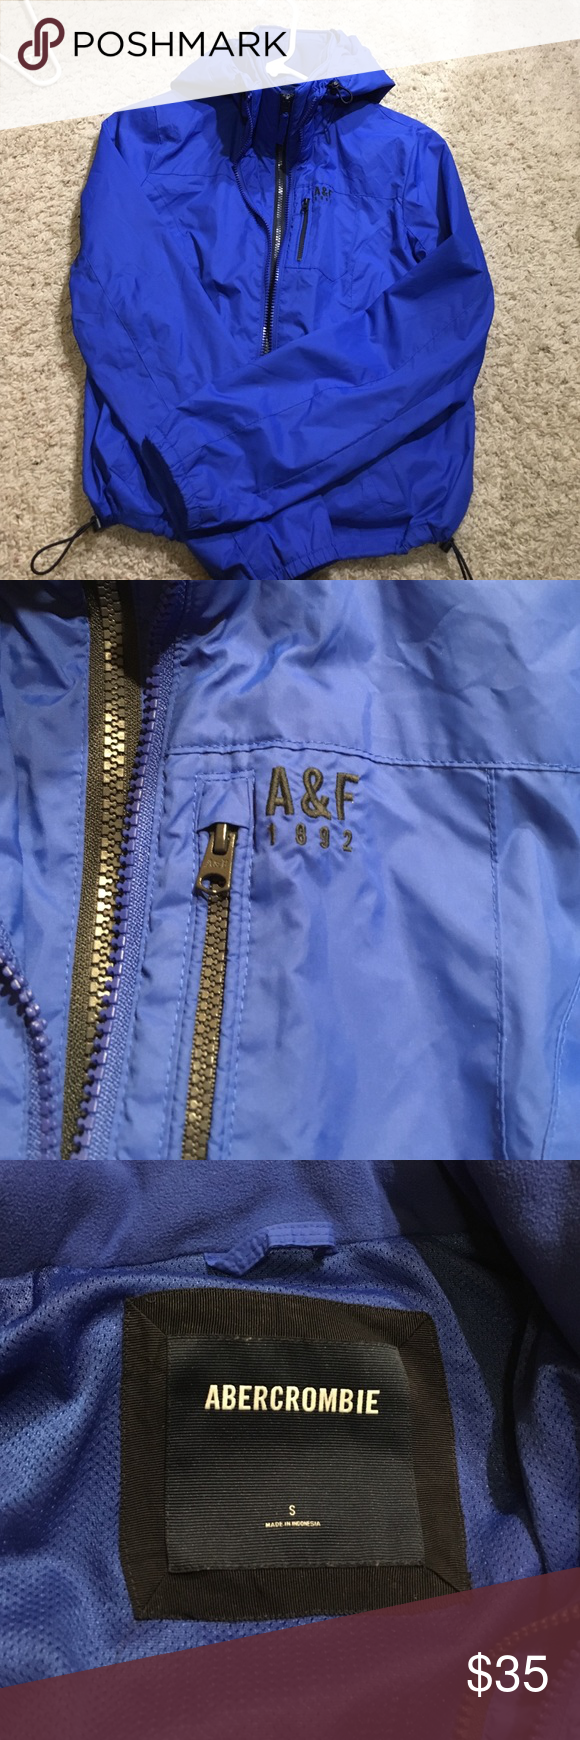 A&F Thick Windbreaker Thick, two zippers, a couple dirt stains nothing too noticeable but can be washed out. Abercrombie & Fitch Jackets & Coats